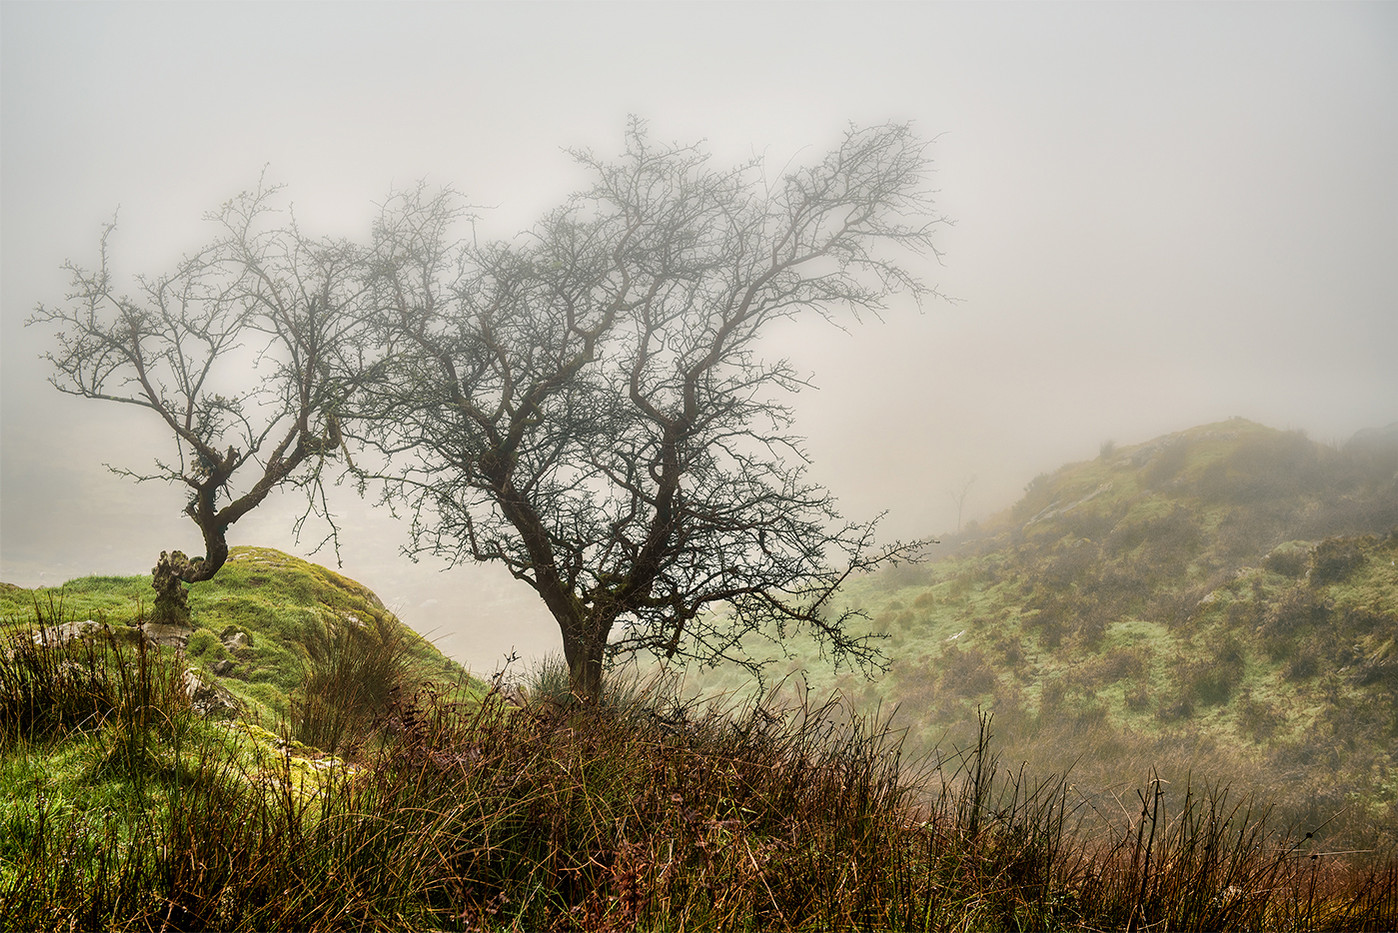 16 A MISTY MORNING IN THE MOUNTAINS by Aann Paine